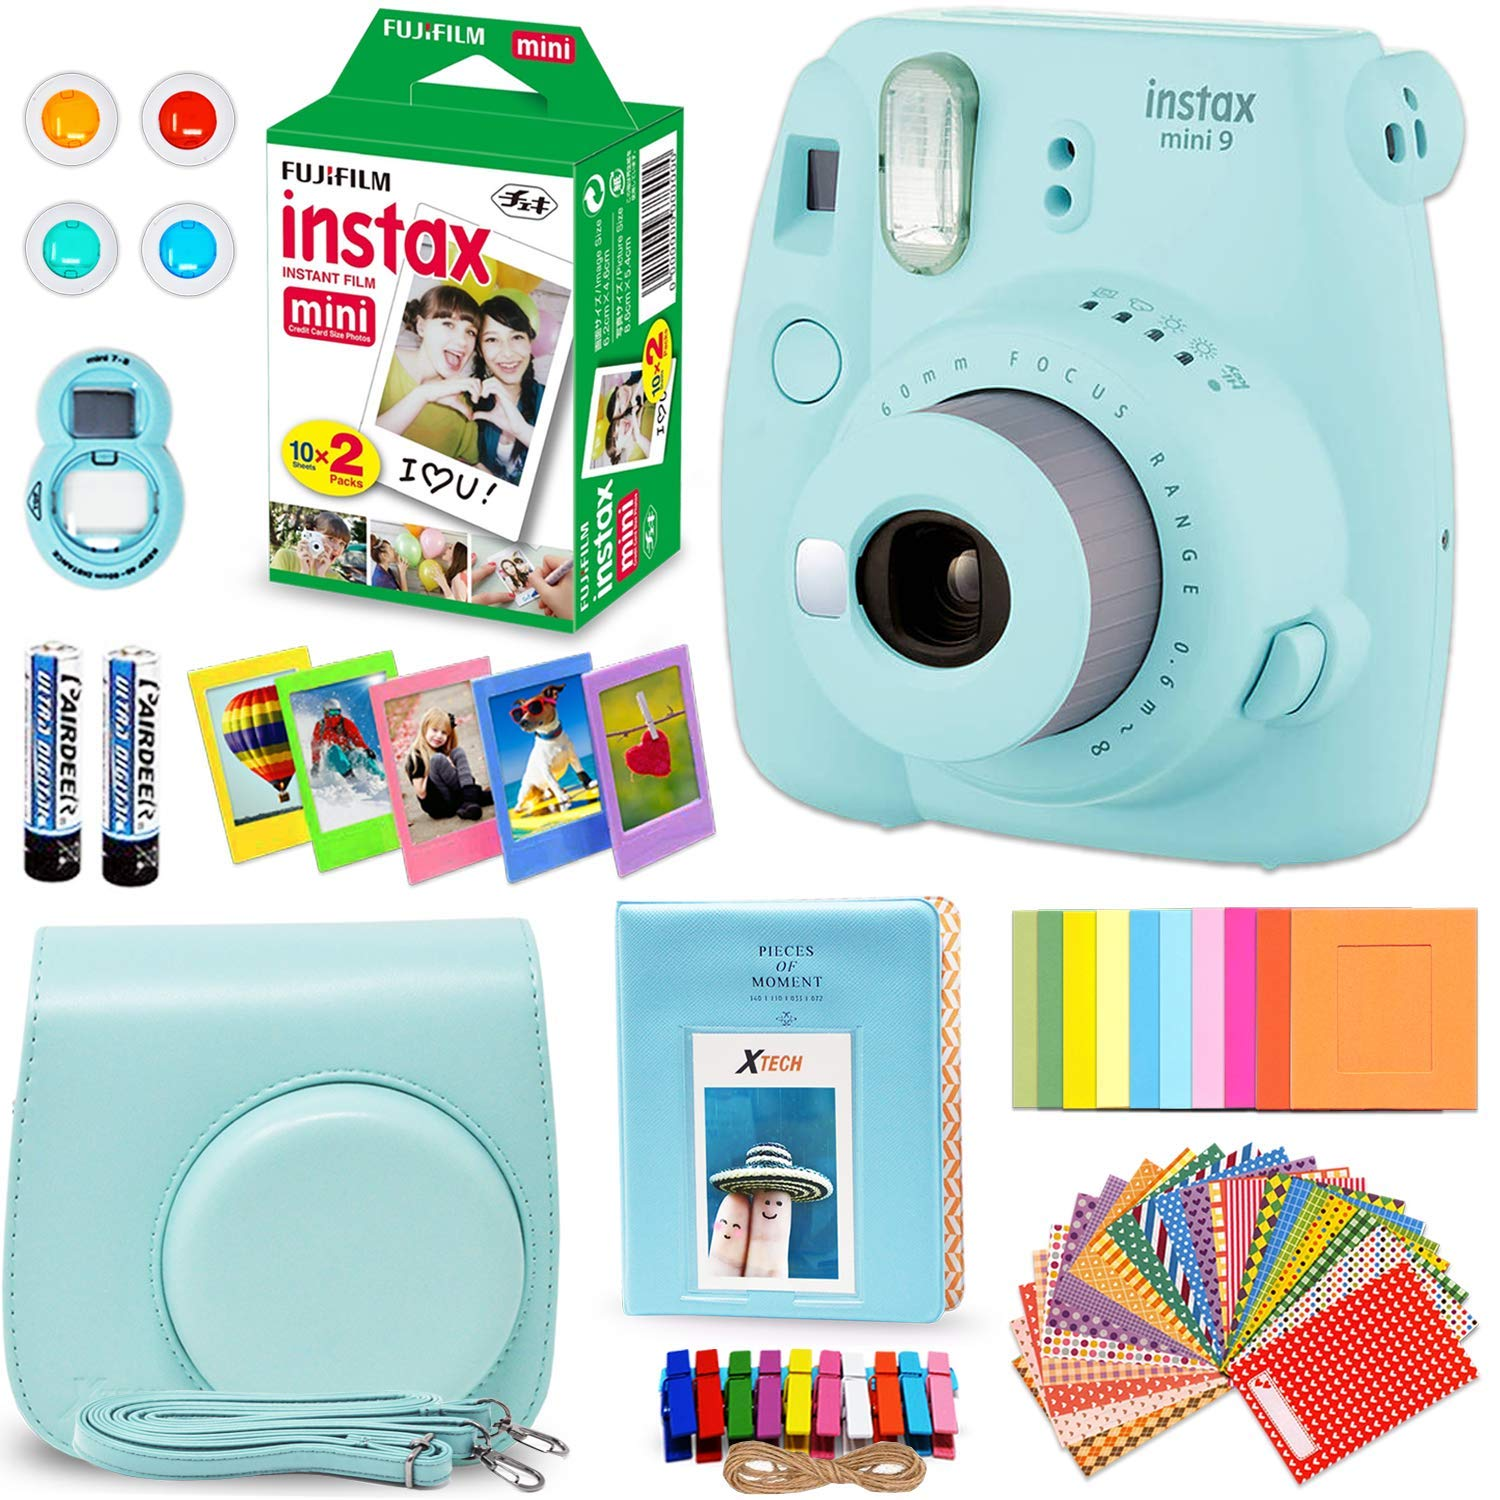 Fujifilm instax mini 9 instant camera ice blue fuji instax film 20 sheets custom camera case instax album 60 colorful stickers 20 emoji stickers